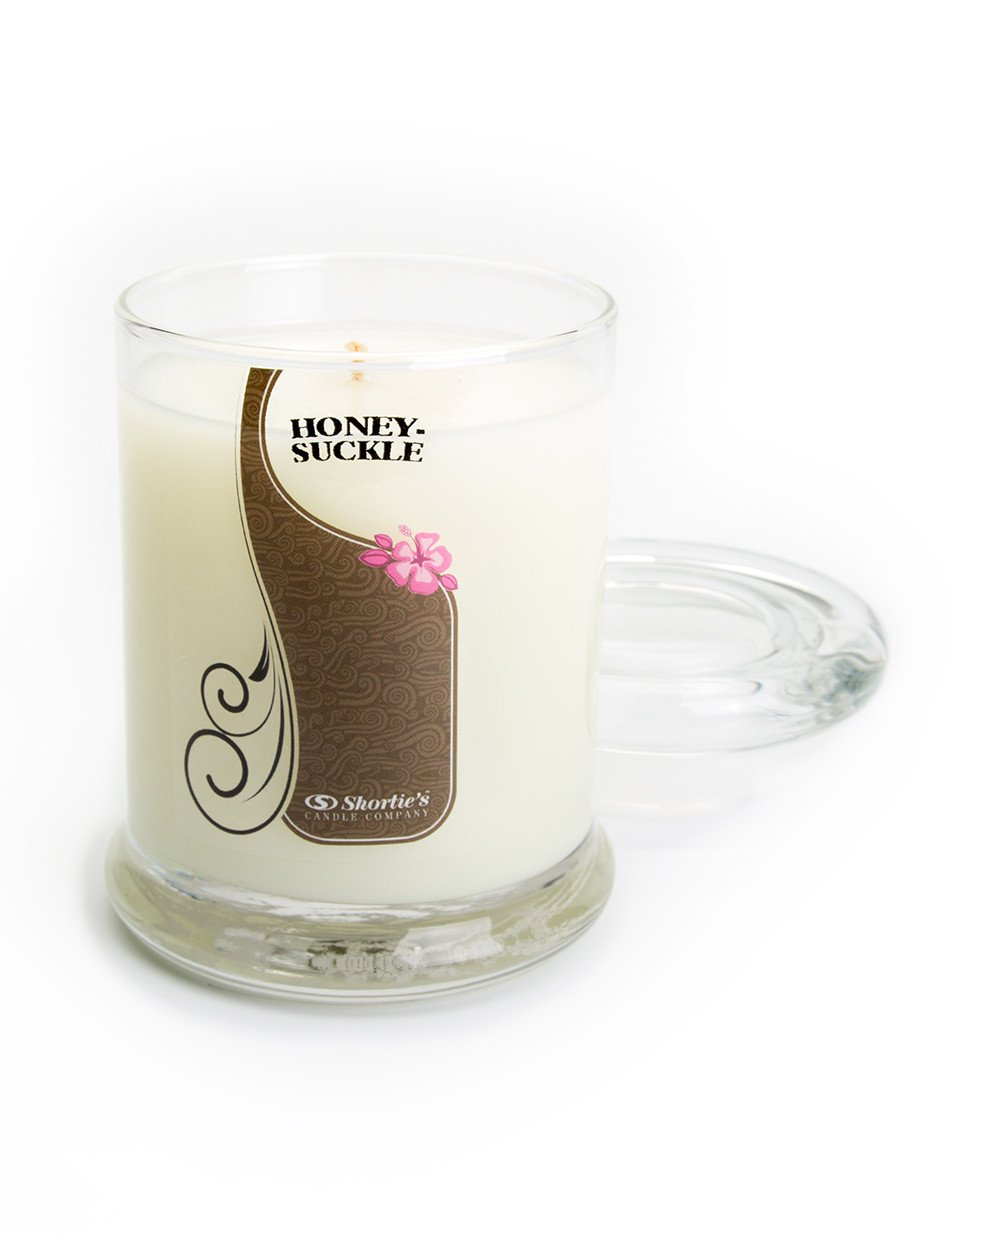 Pure Honeysuckle Candle - Small White 6.5 Oz. Highly Scented Jar Candle - Made with Essential & Natural Oils - Flower & Floral Collection